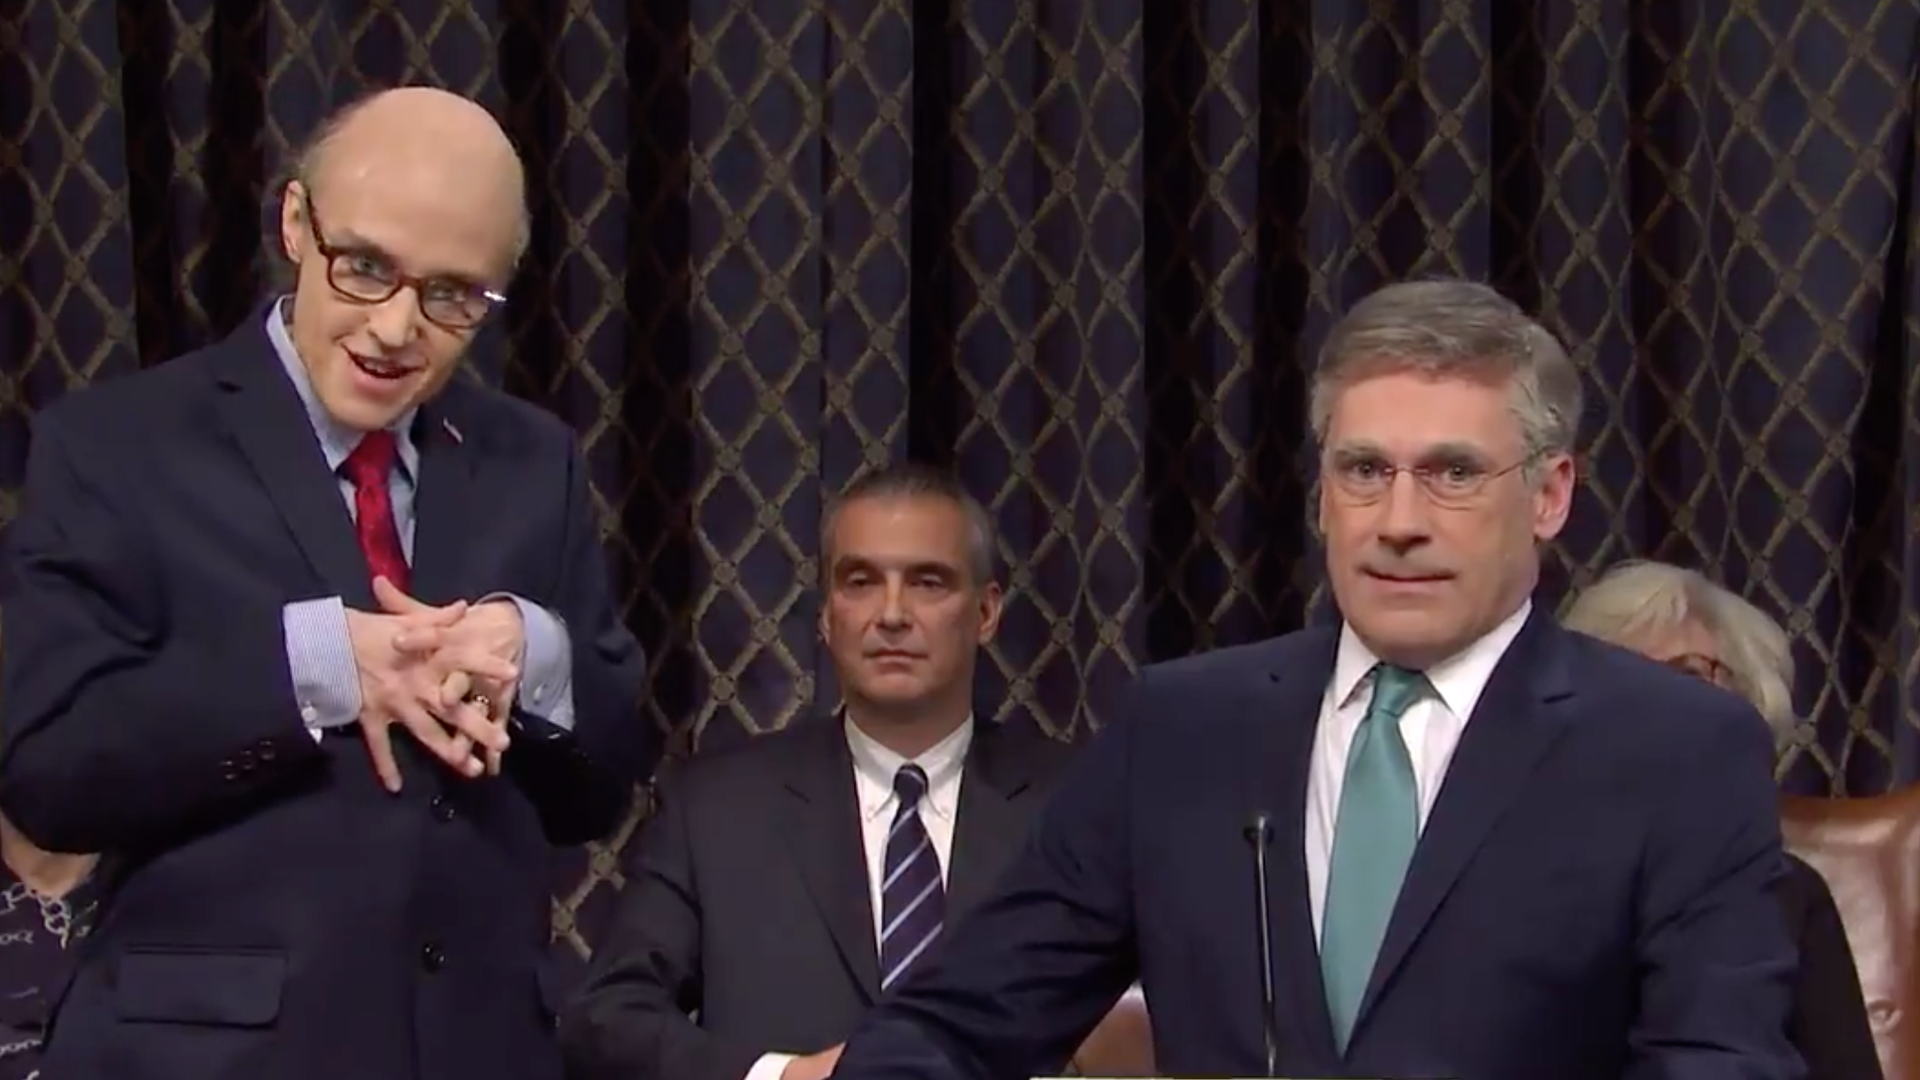 A screenshot of Jon Hamm as Bill Taylor, the top U.S. diplomat in Ukraine, and Kate McKinnon as President Trump's personal lawyer Rudy Giuliani.